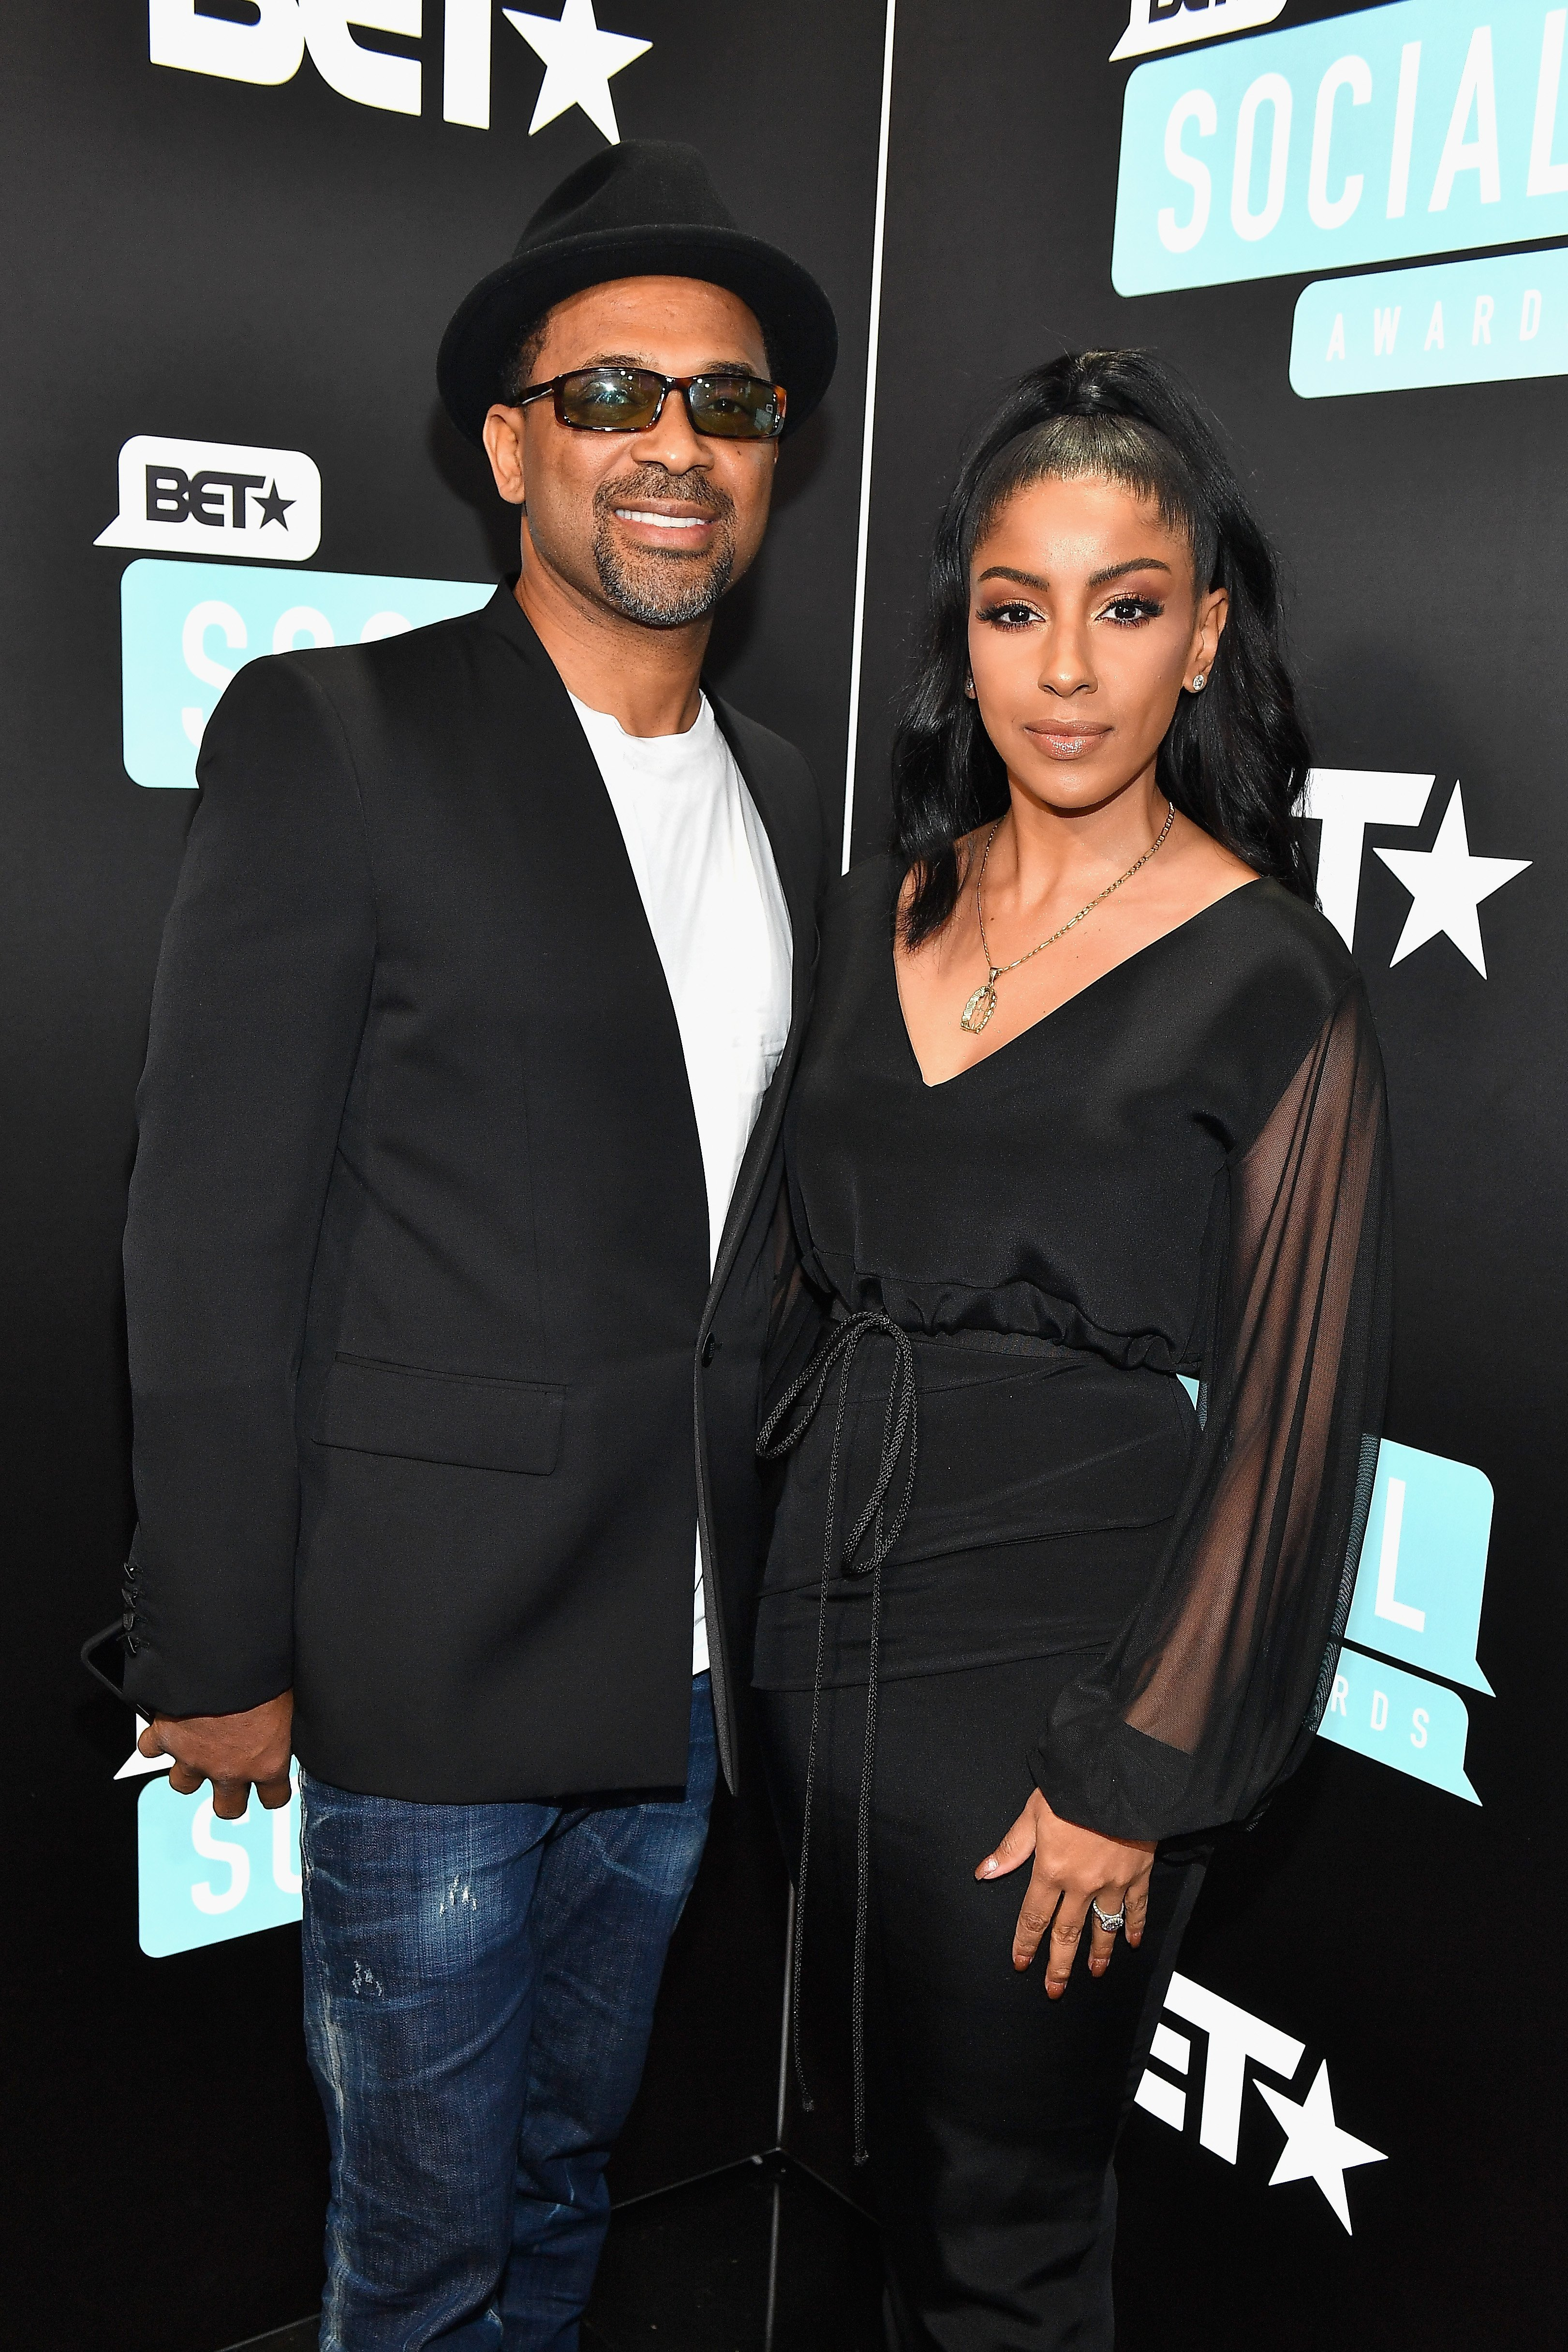 Mike Epps and Kyra Robinson at the 2019 BET Social Awards in March 2019. | Photo: Getty Images